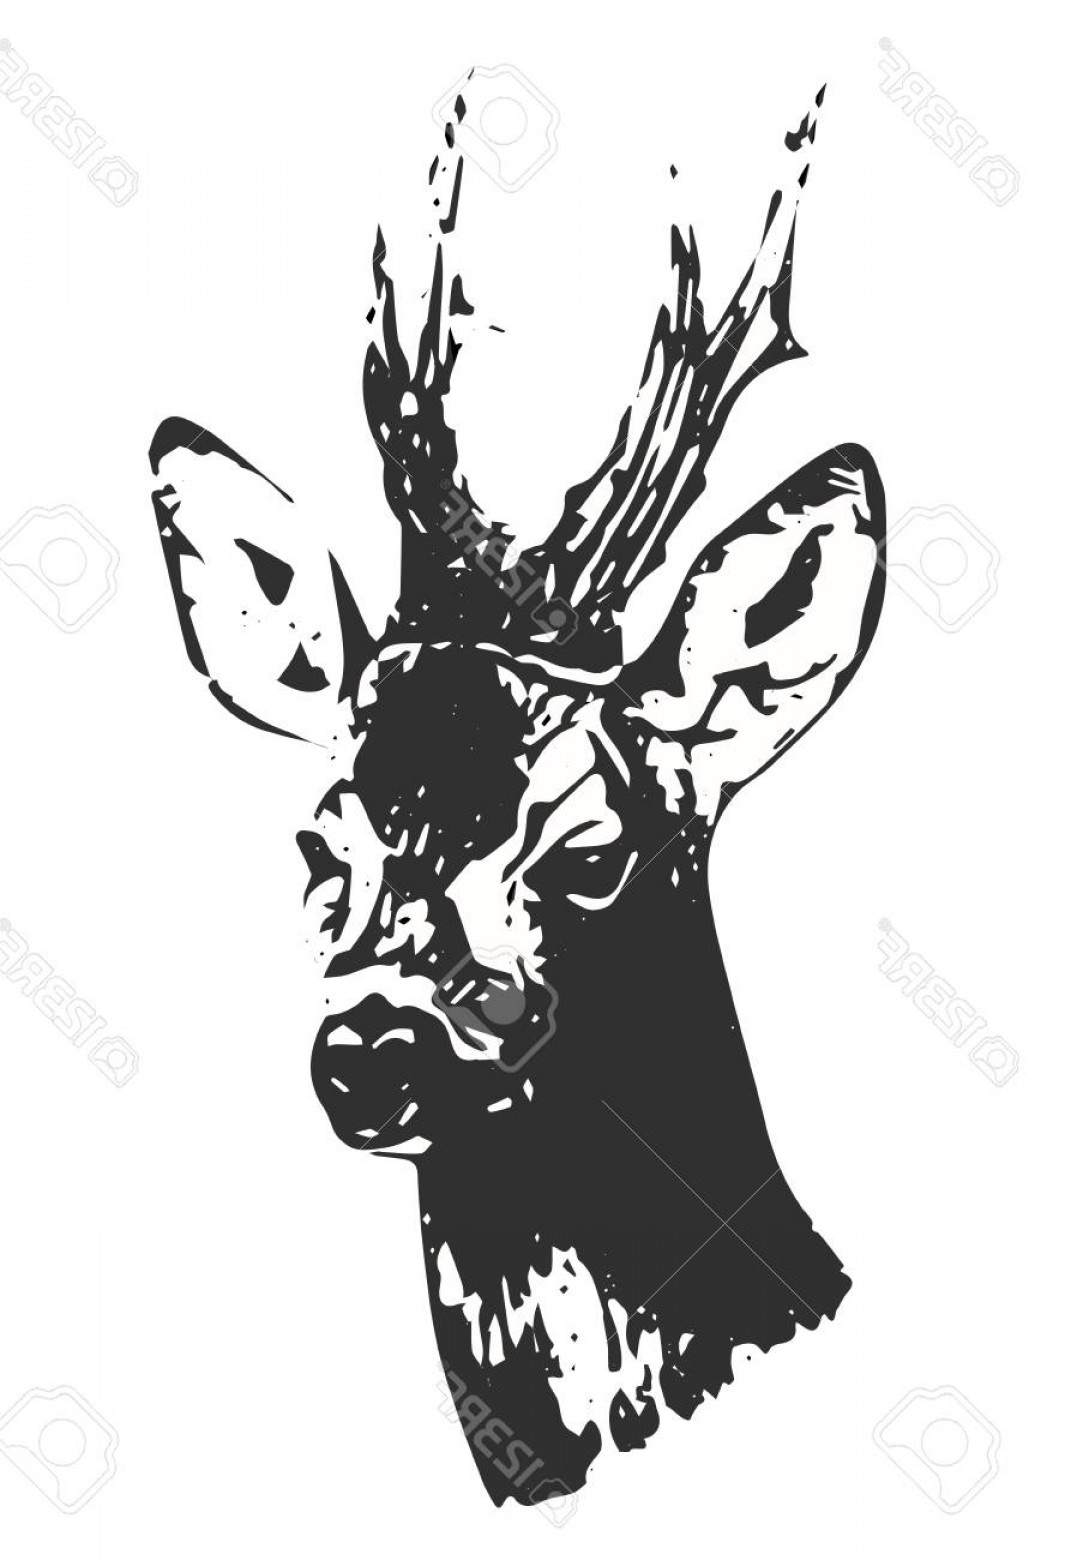 Vector Buck Print: Photostock Vector Hand Drawn Black And White Buck Silhouette Vector Illustration Print For T Shirts